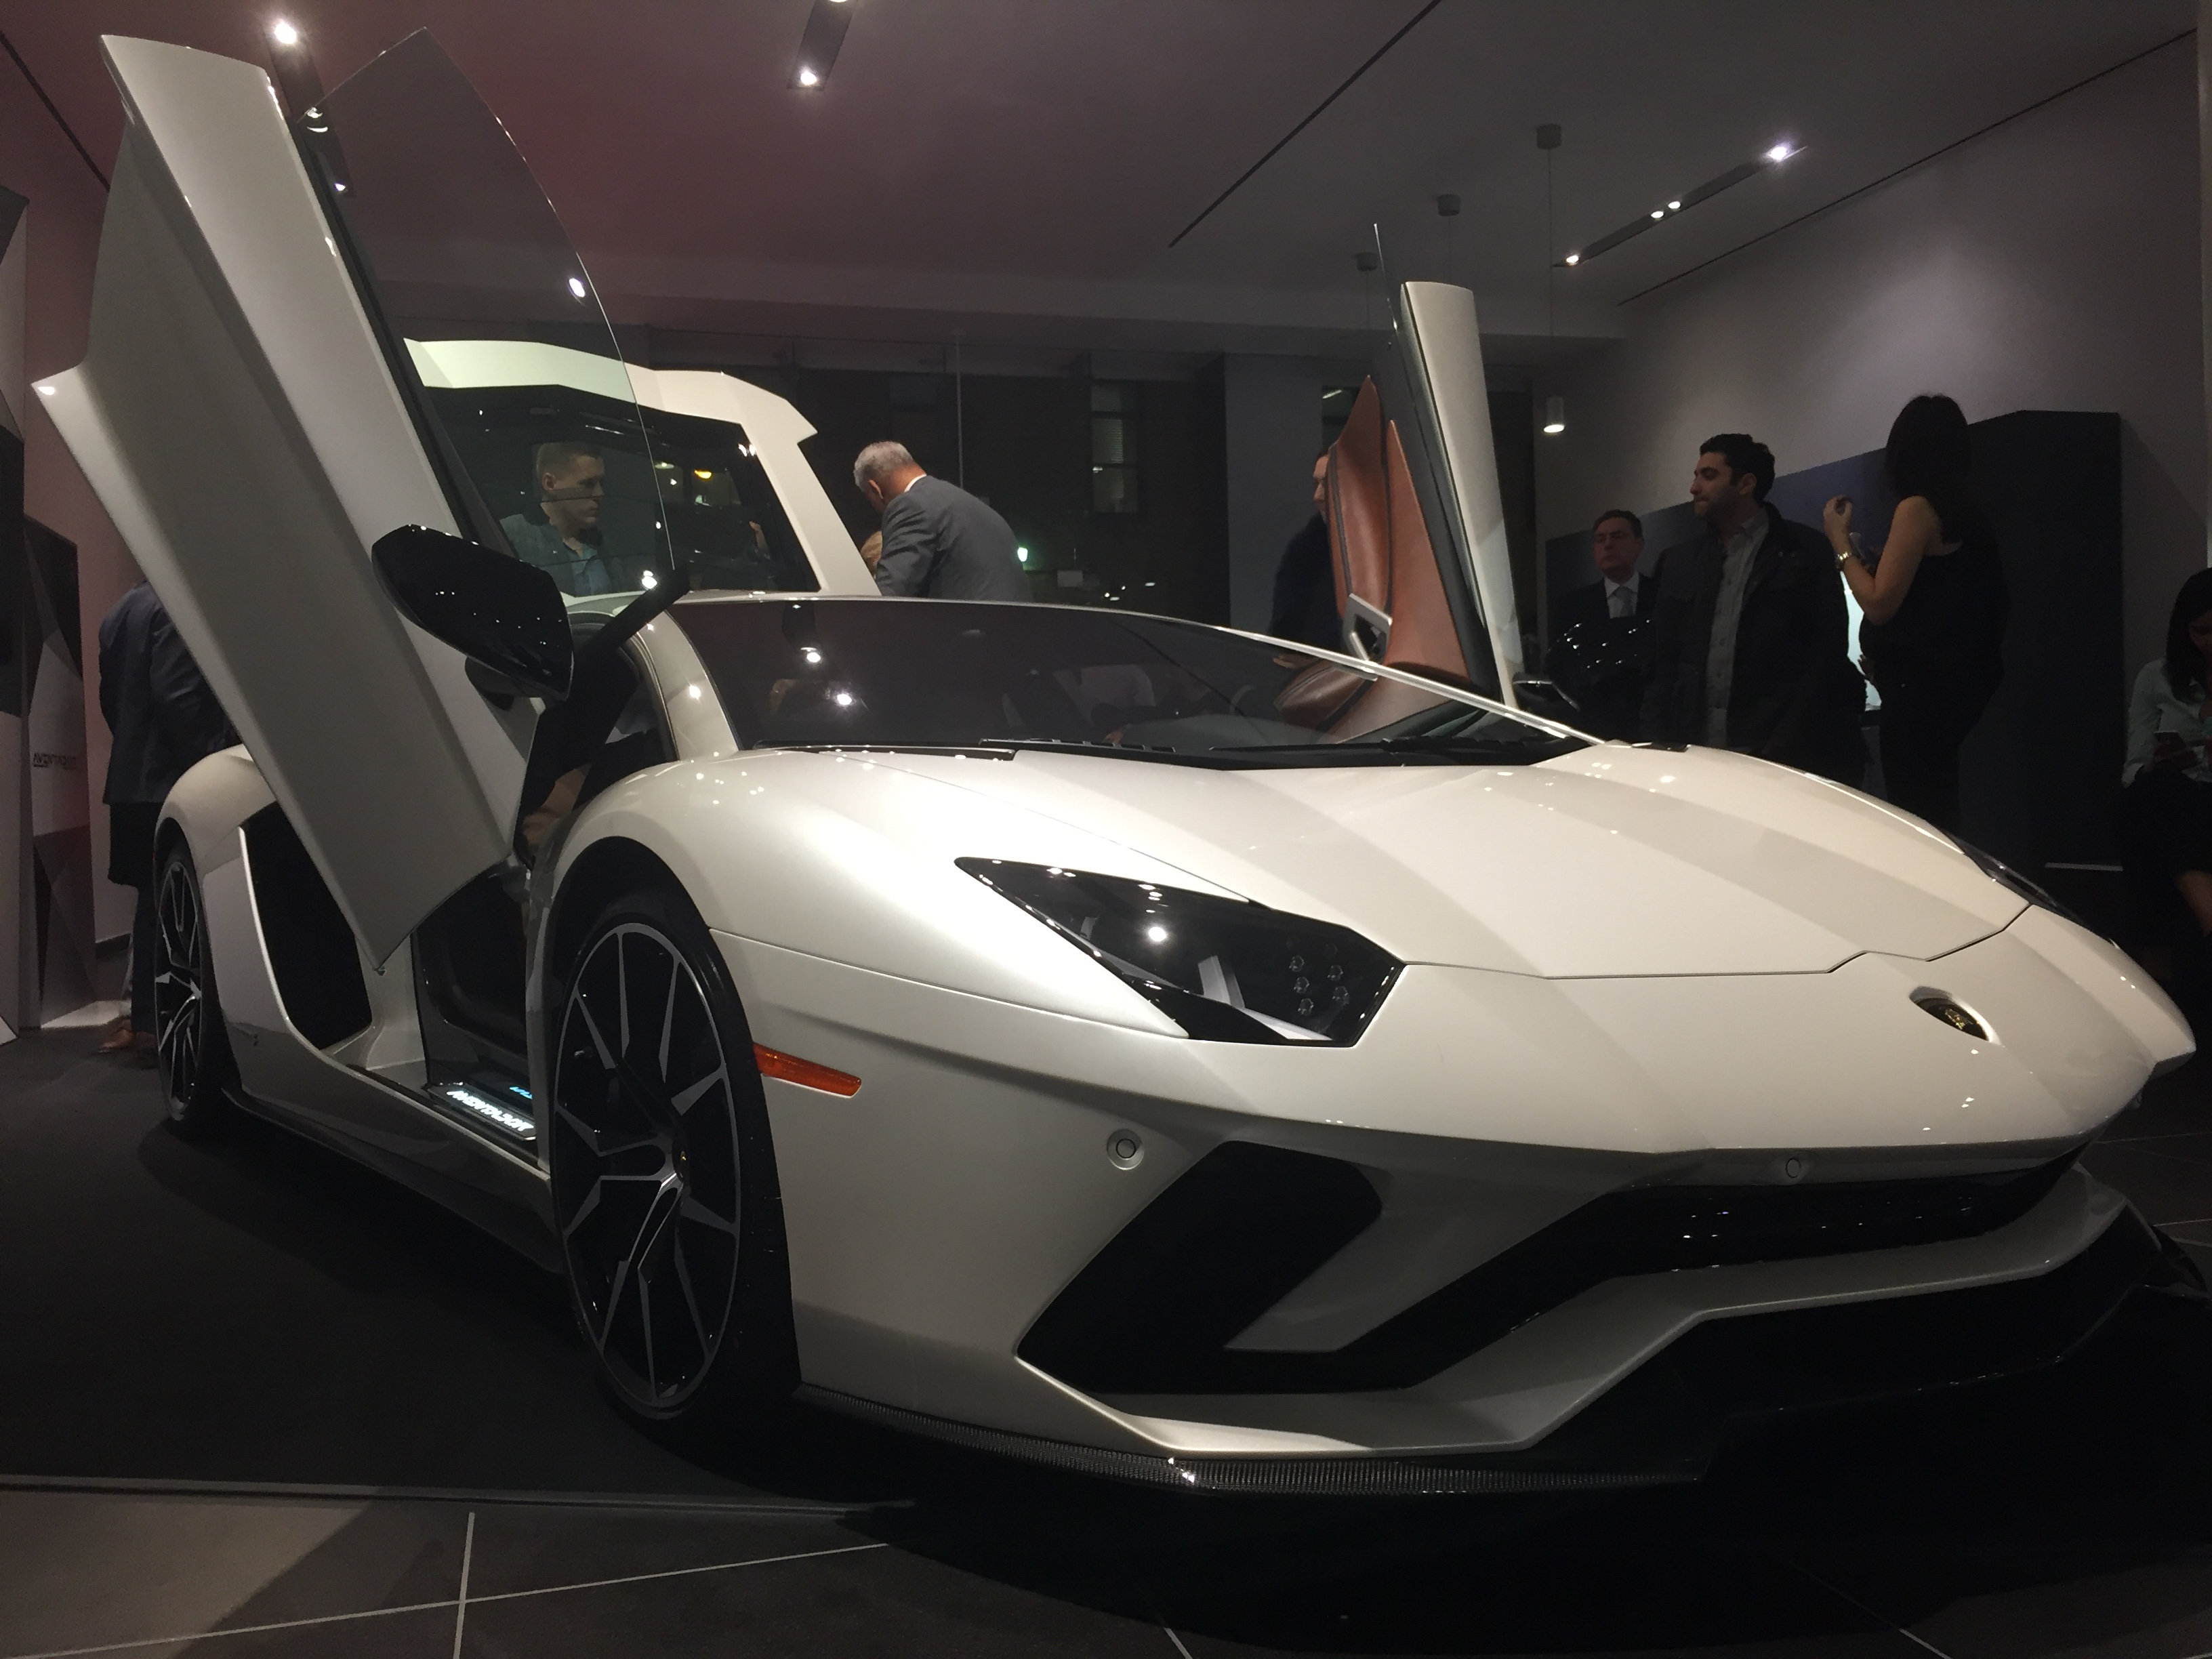 Watch The Mind Blowing New Lamborghini Aventador S Being Unveiled